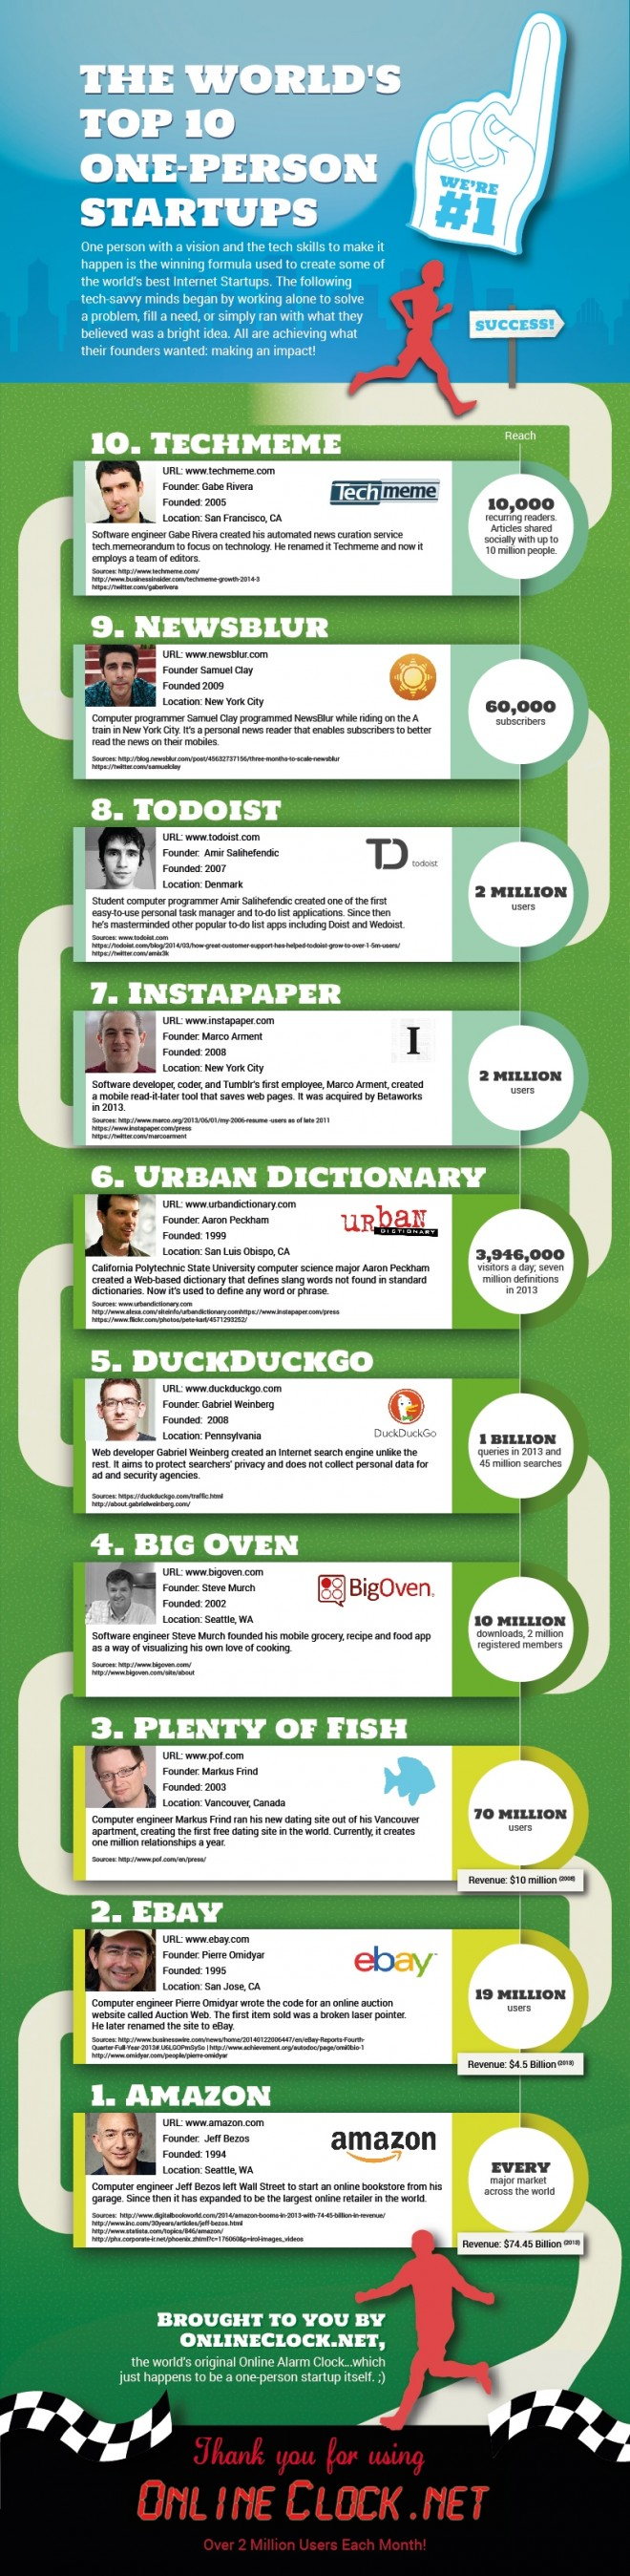 Top 10 Most Successful One Person Startups | Startups